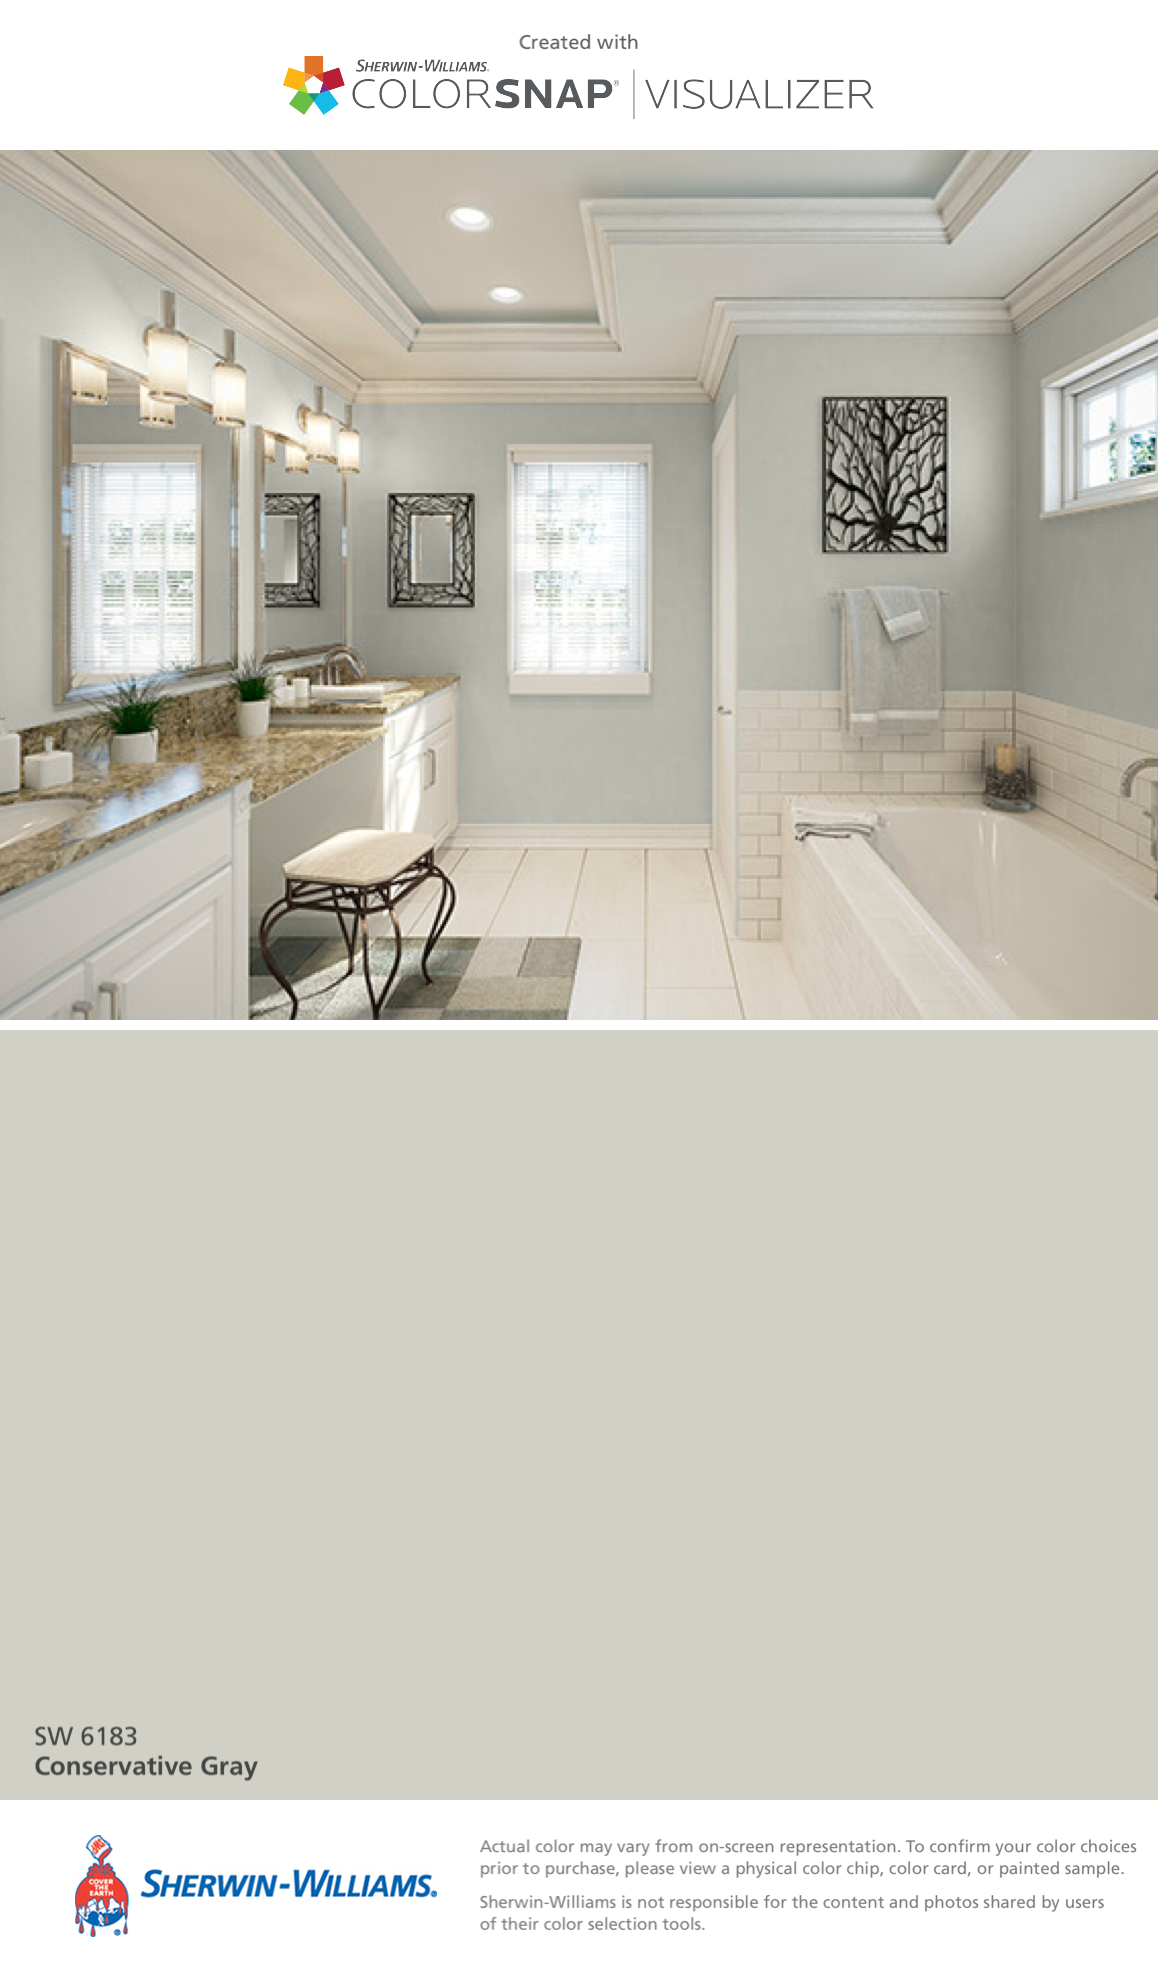 I Found This Color With Colorsnap Visualizer For Iphone By Sherwin Williams Conservative Gray Sw 6183